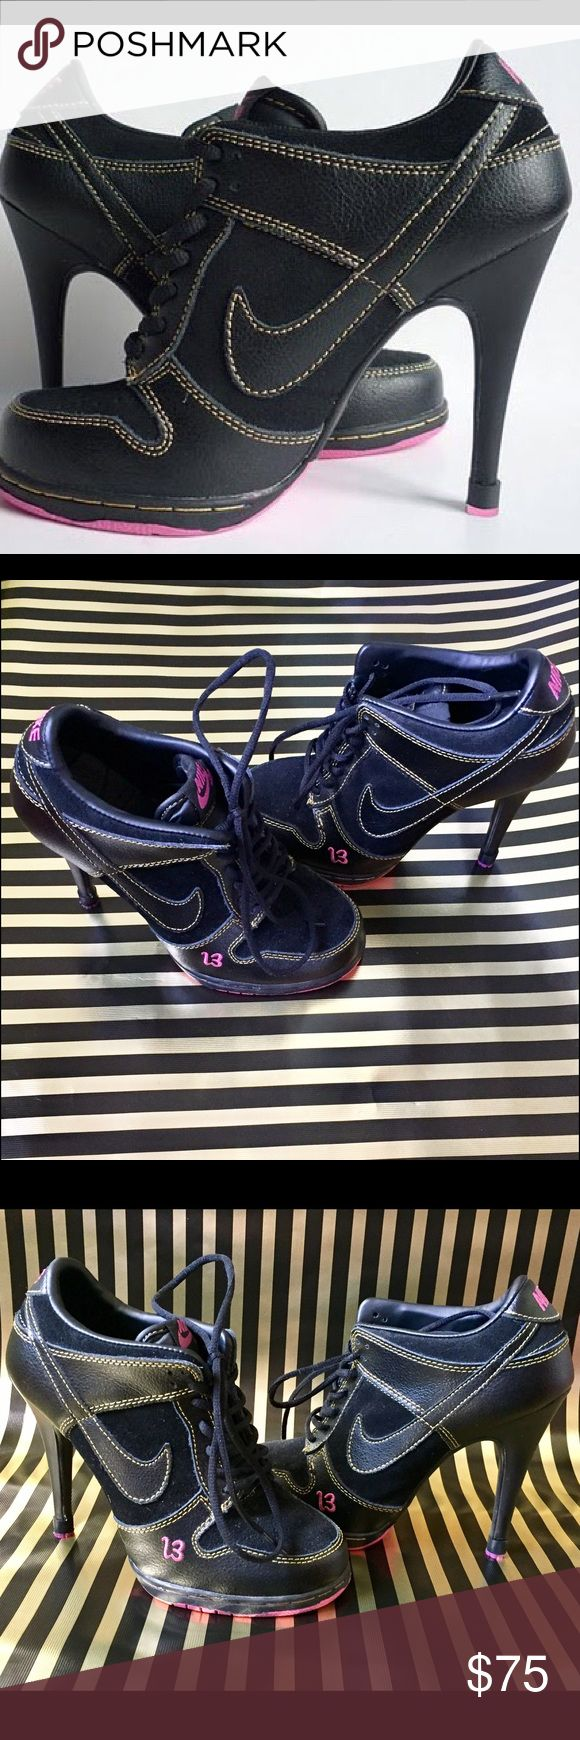 Women's Nike high heels dunk SB low  💯 Black and pink size 5.5 Women's Nike high heels dunk SB low  💯 these are sexy and sporty and sure to turn heads 😏 Nike Shoes